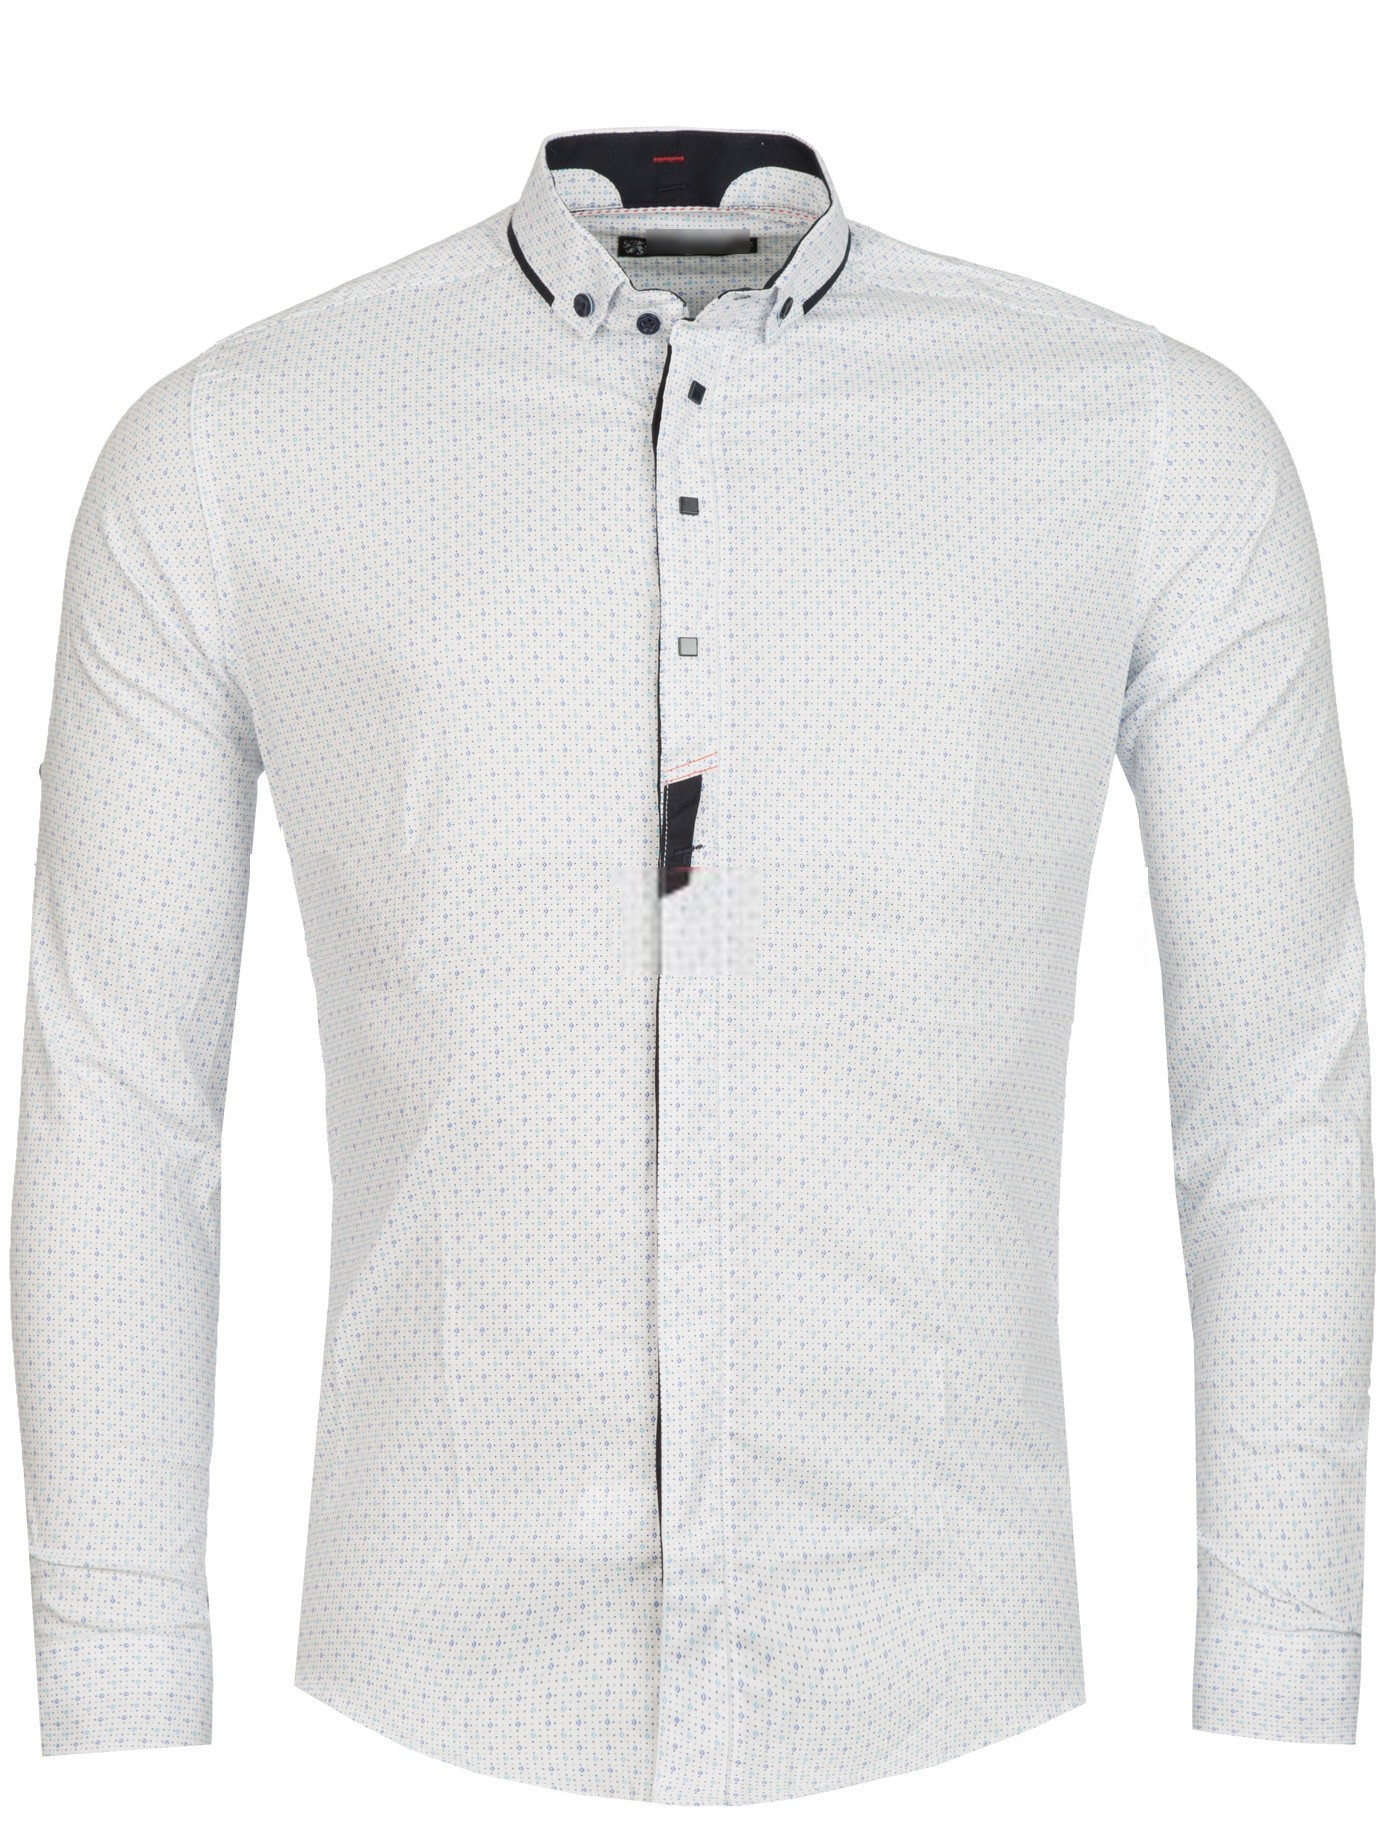 Slim Fit Chemise Homme Blanche Italienne 78xwgft